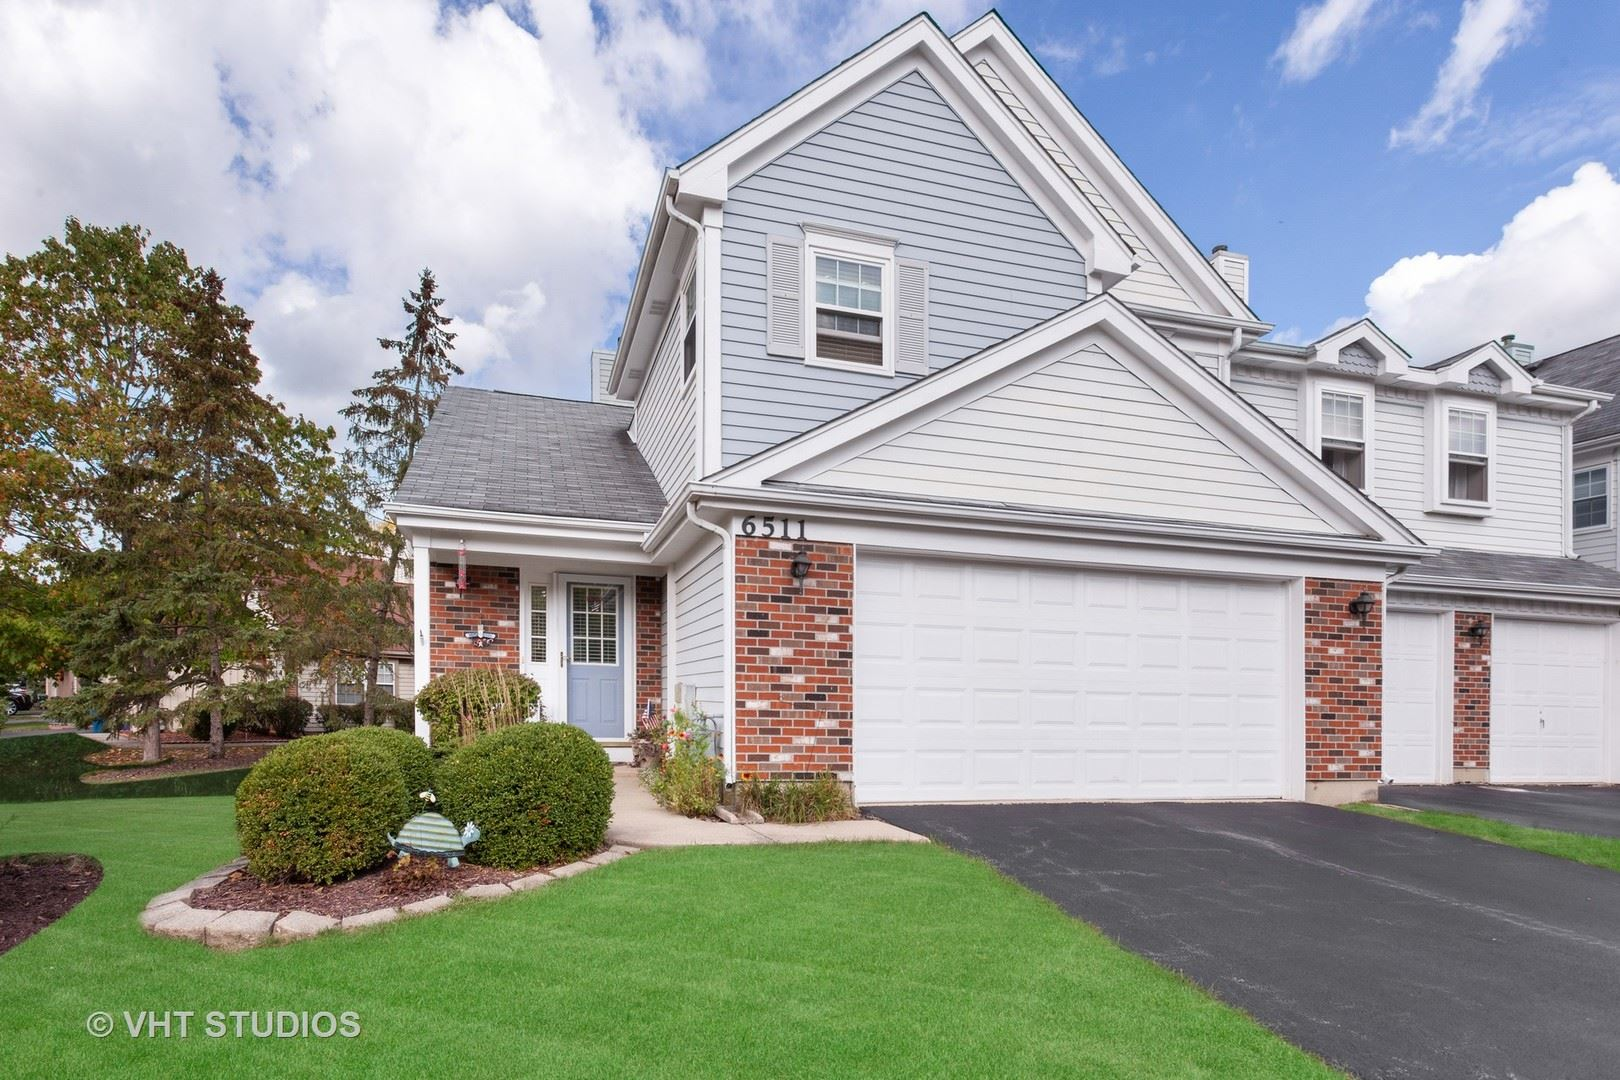 6511 Barclay Court, Downers Grove, IL 60516 - #: 11242724